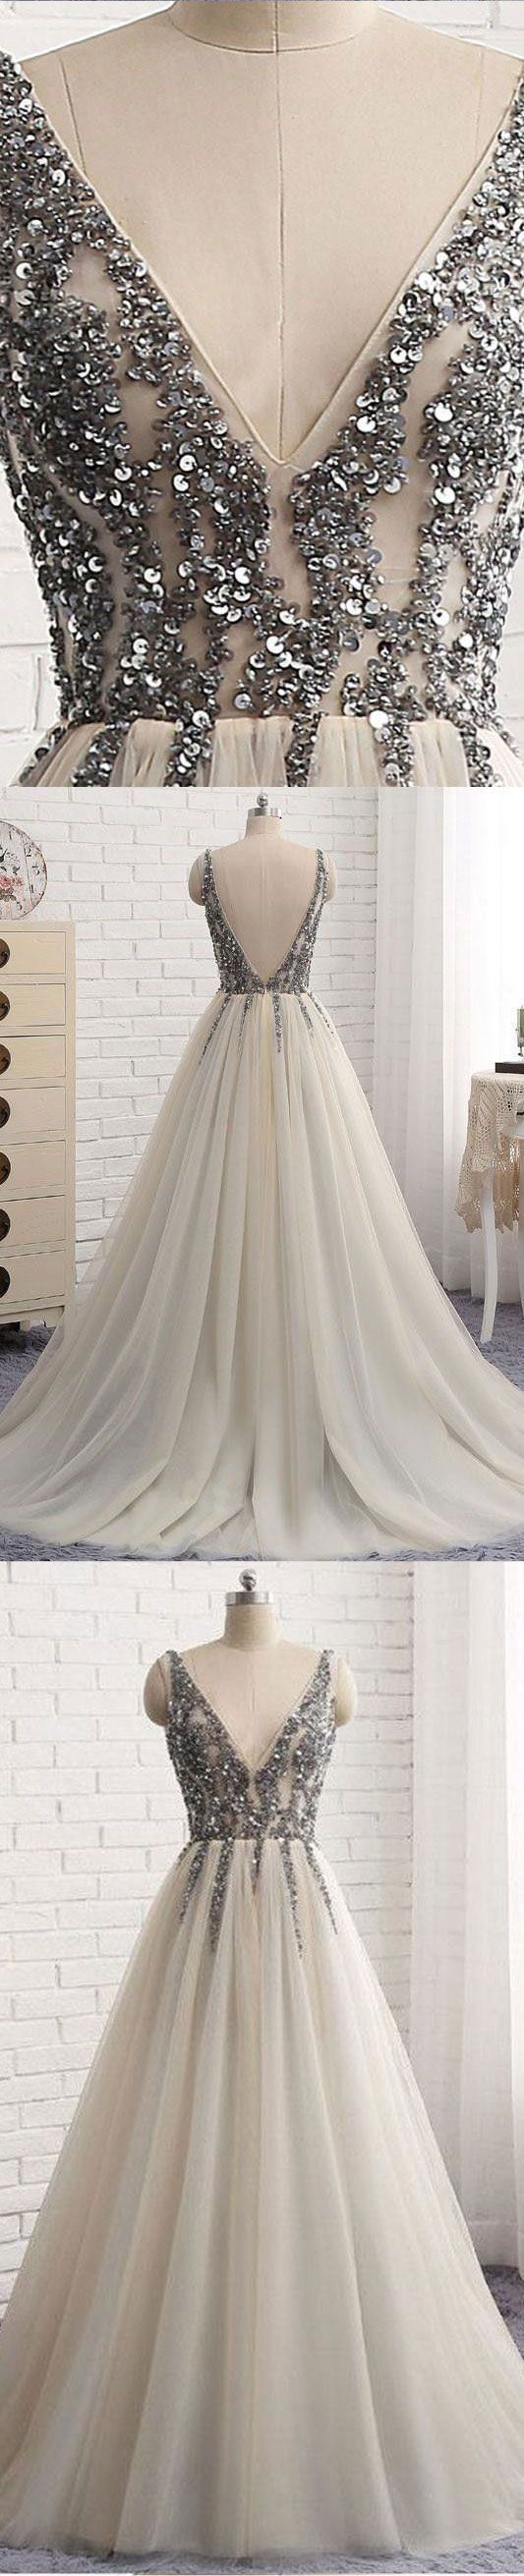 V neck long prom dresses with silver sequined backless long prom